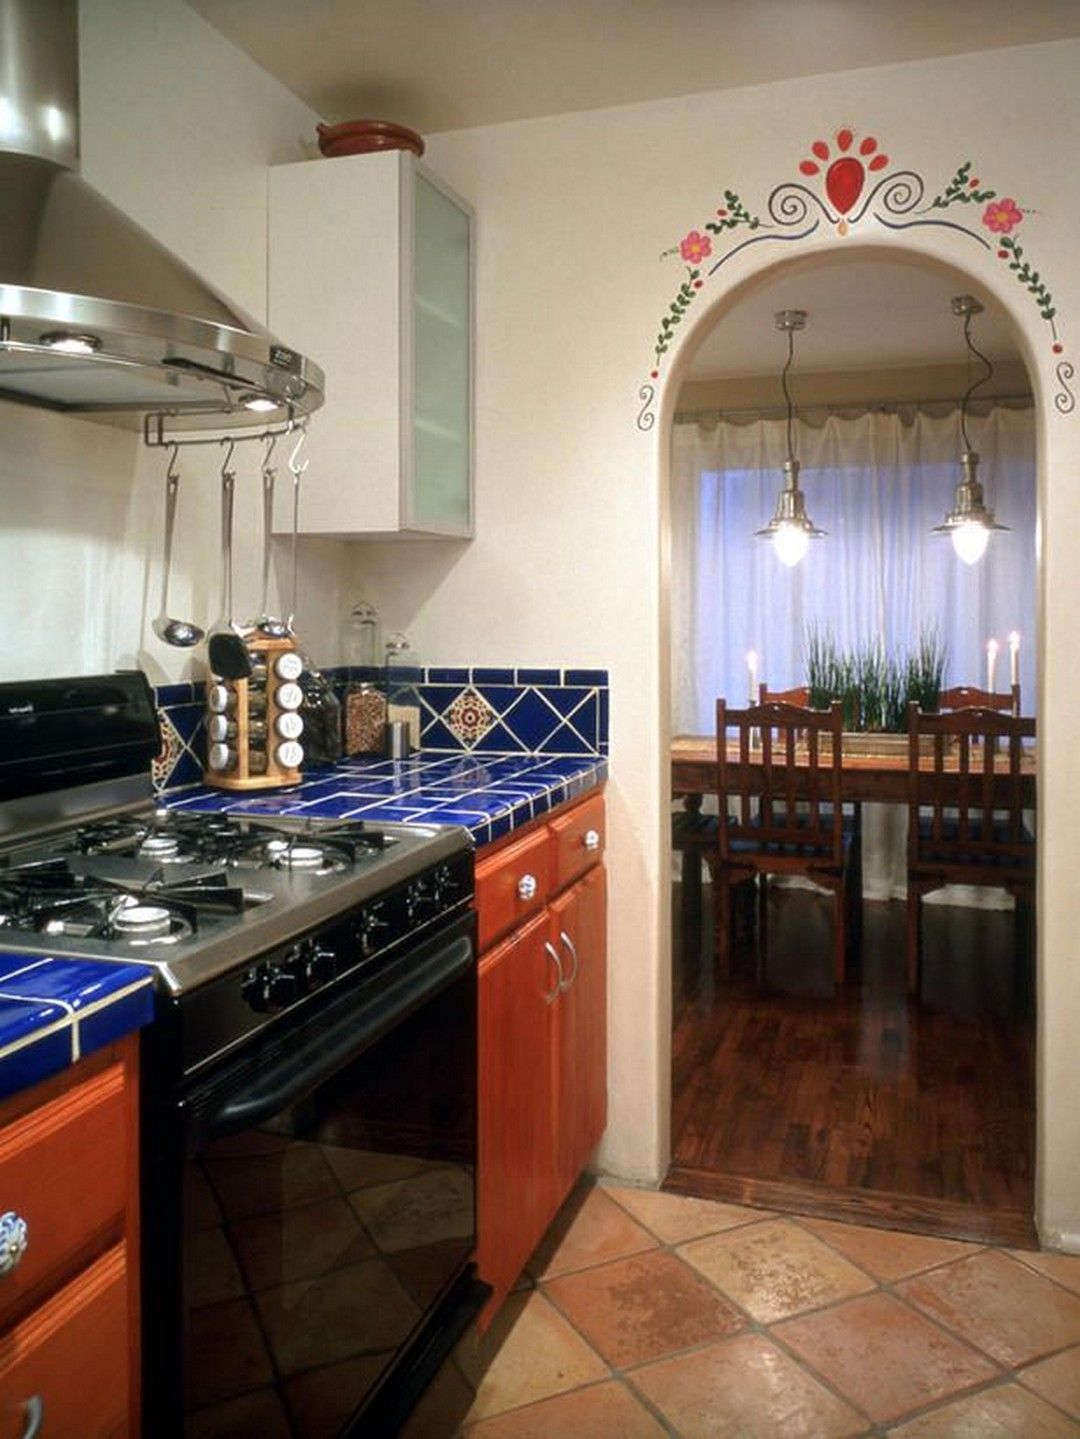 37 Colorful Kitchen Decorating With Mexican Style 23 In 2020